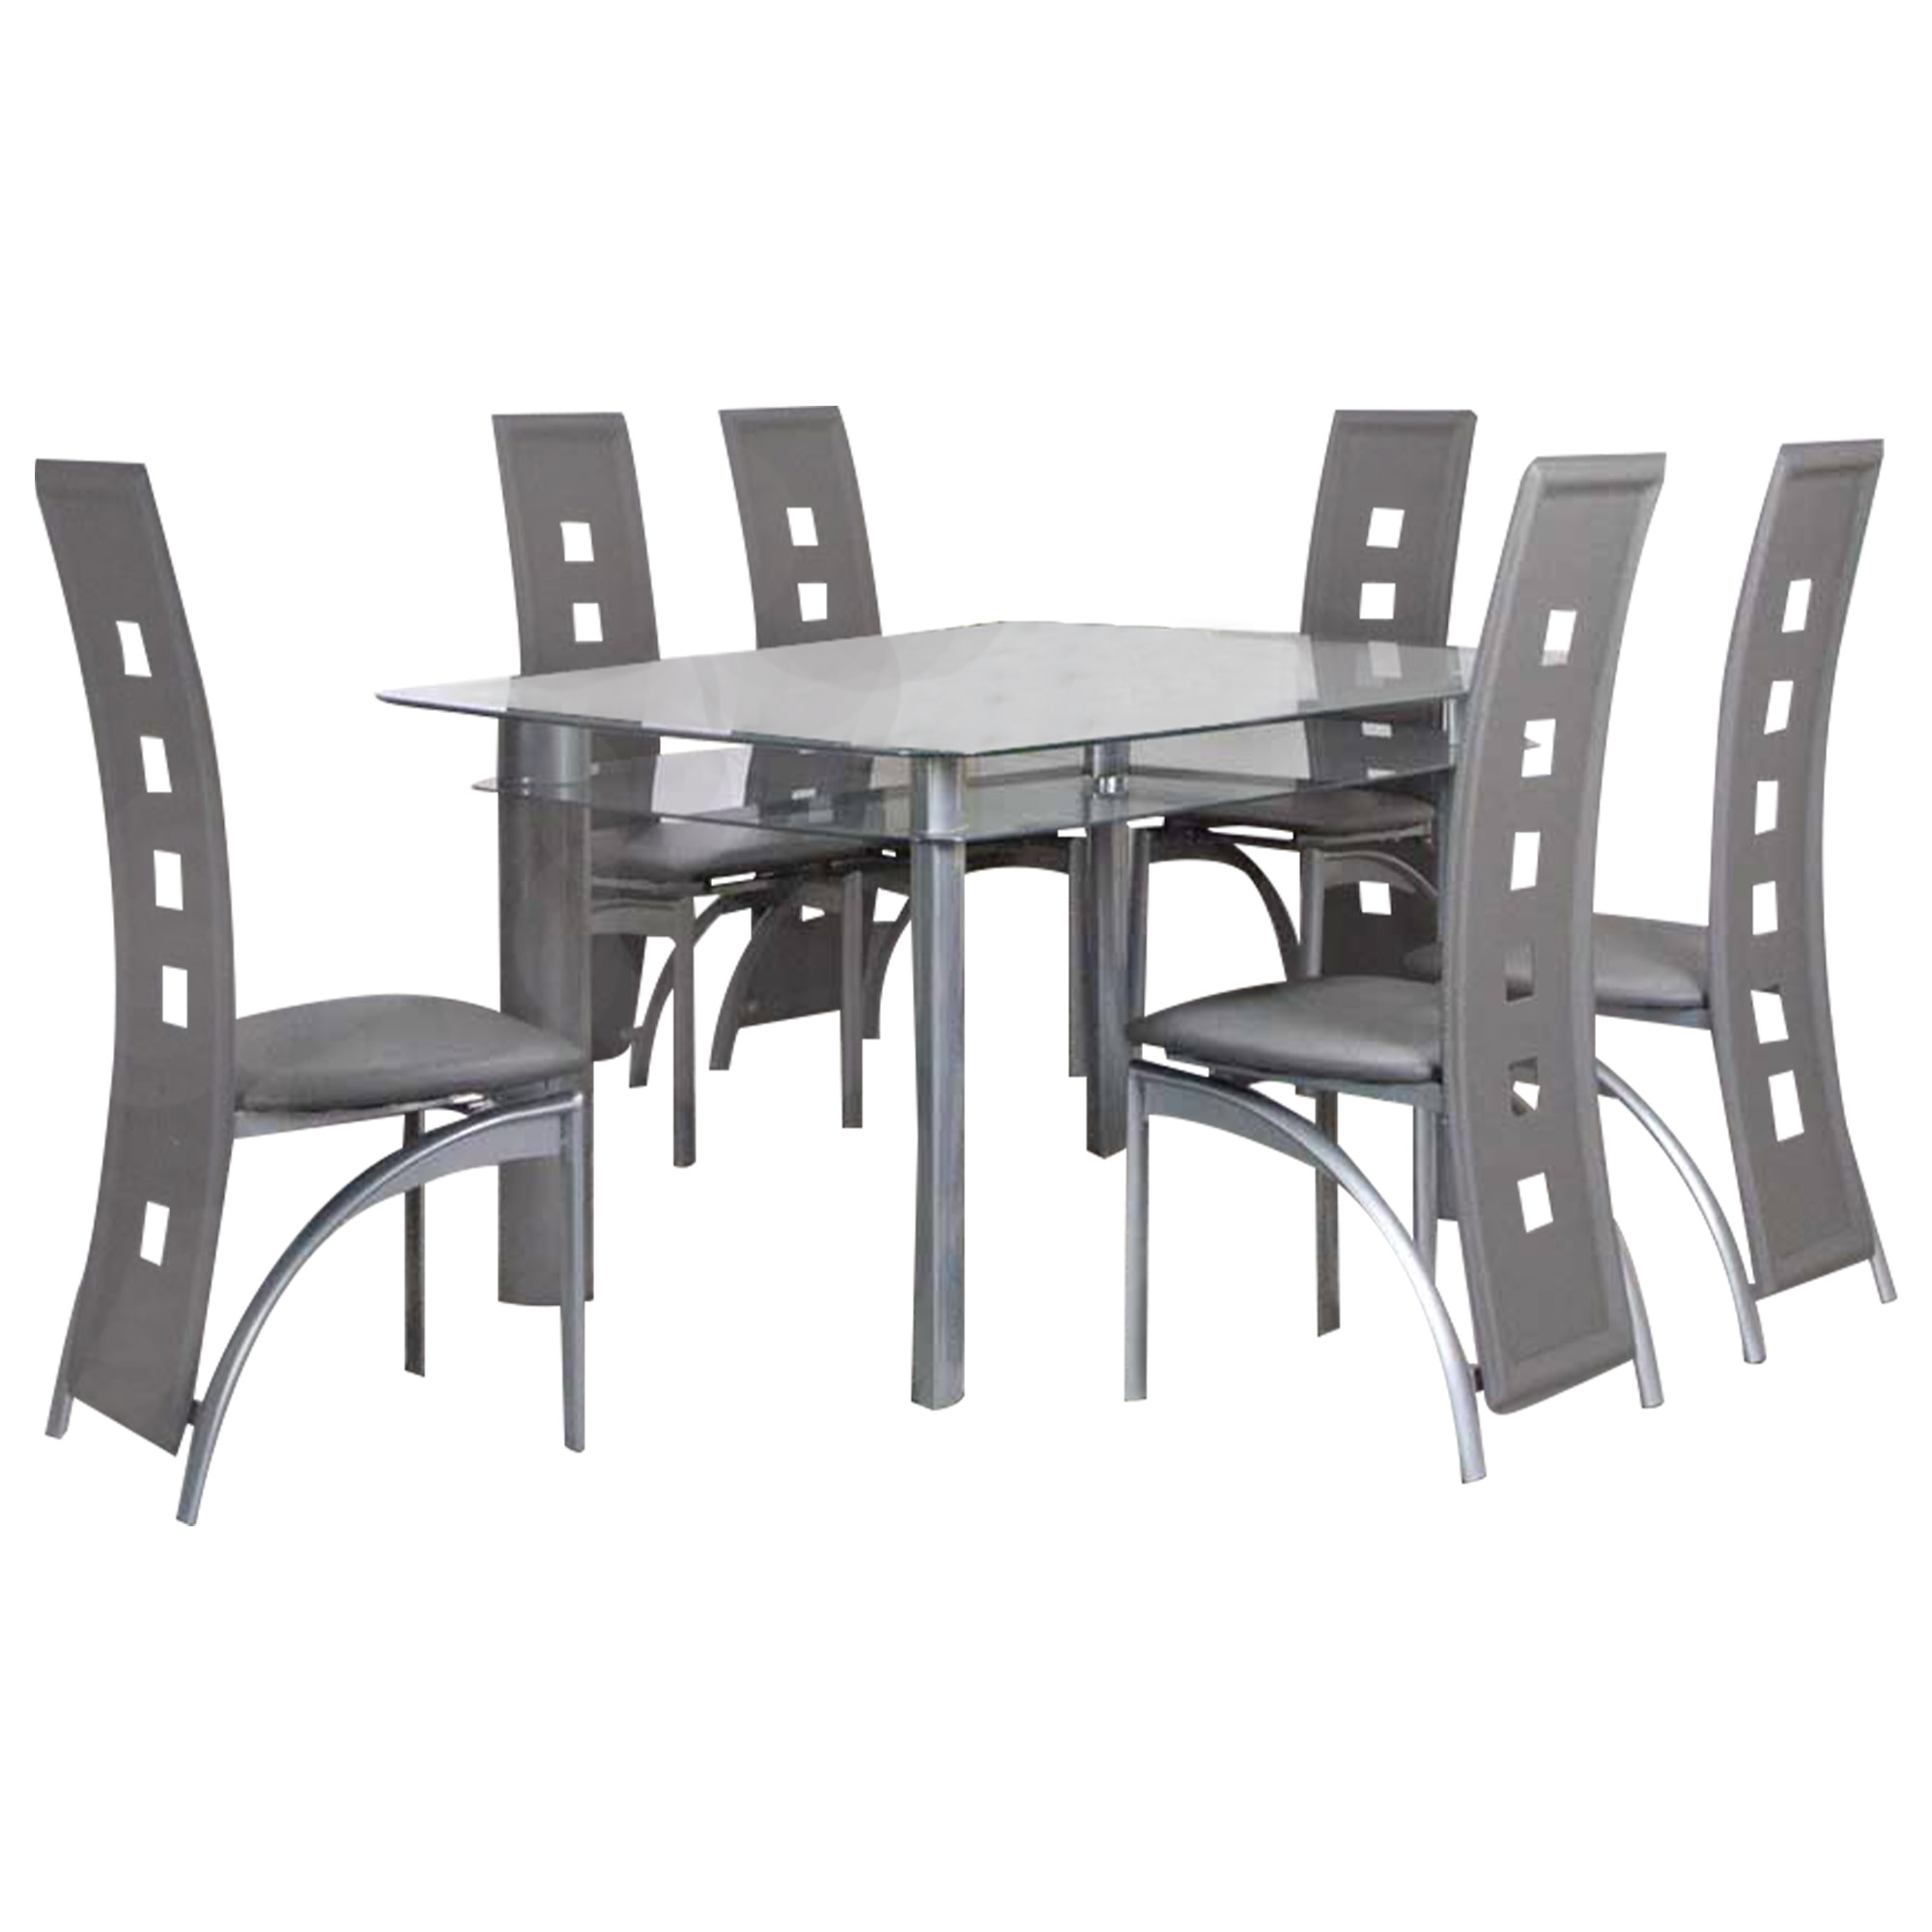 Dining Room Tables On Sale Now American Freight